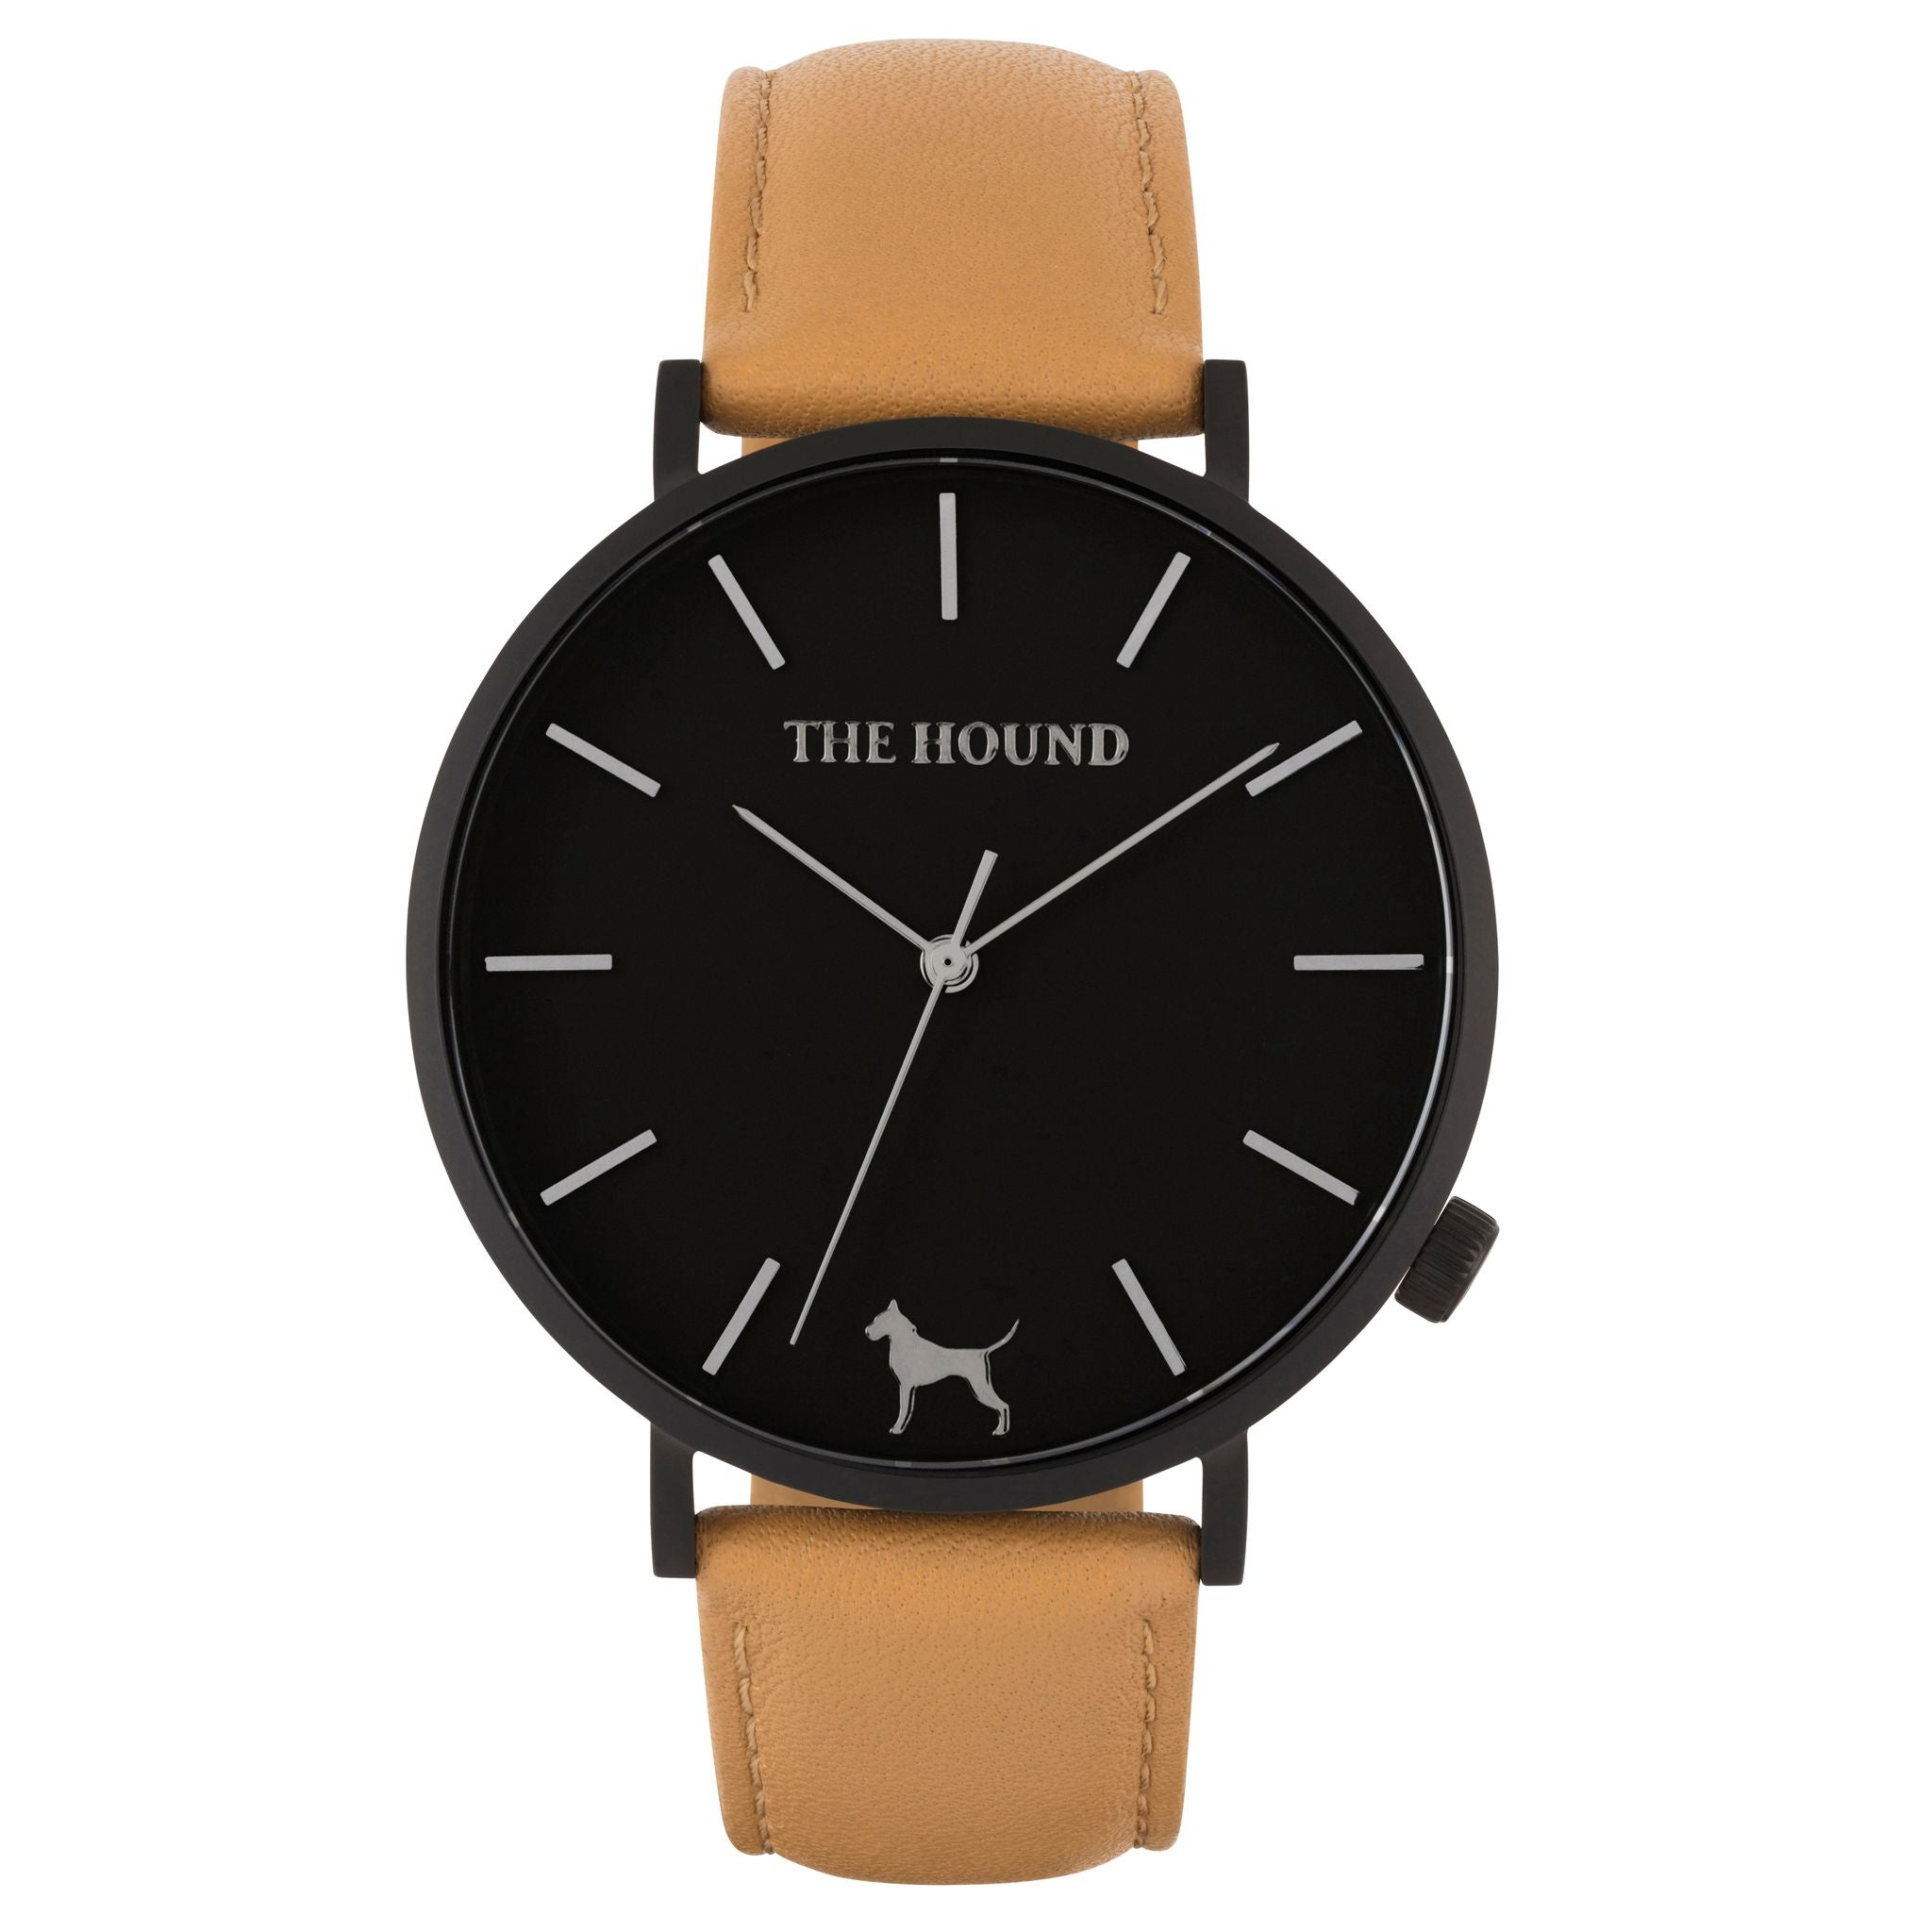 Matte black & black face watch with camel leather